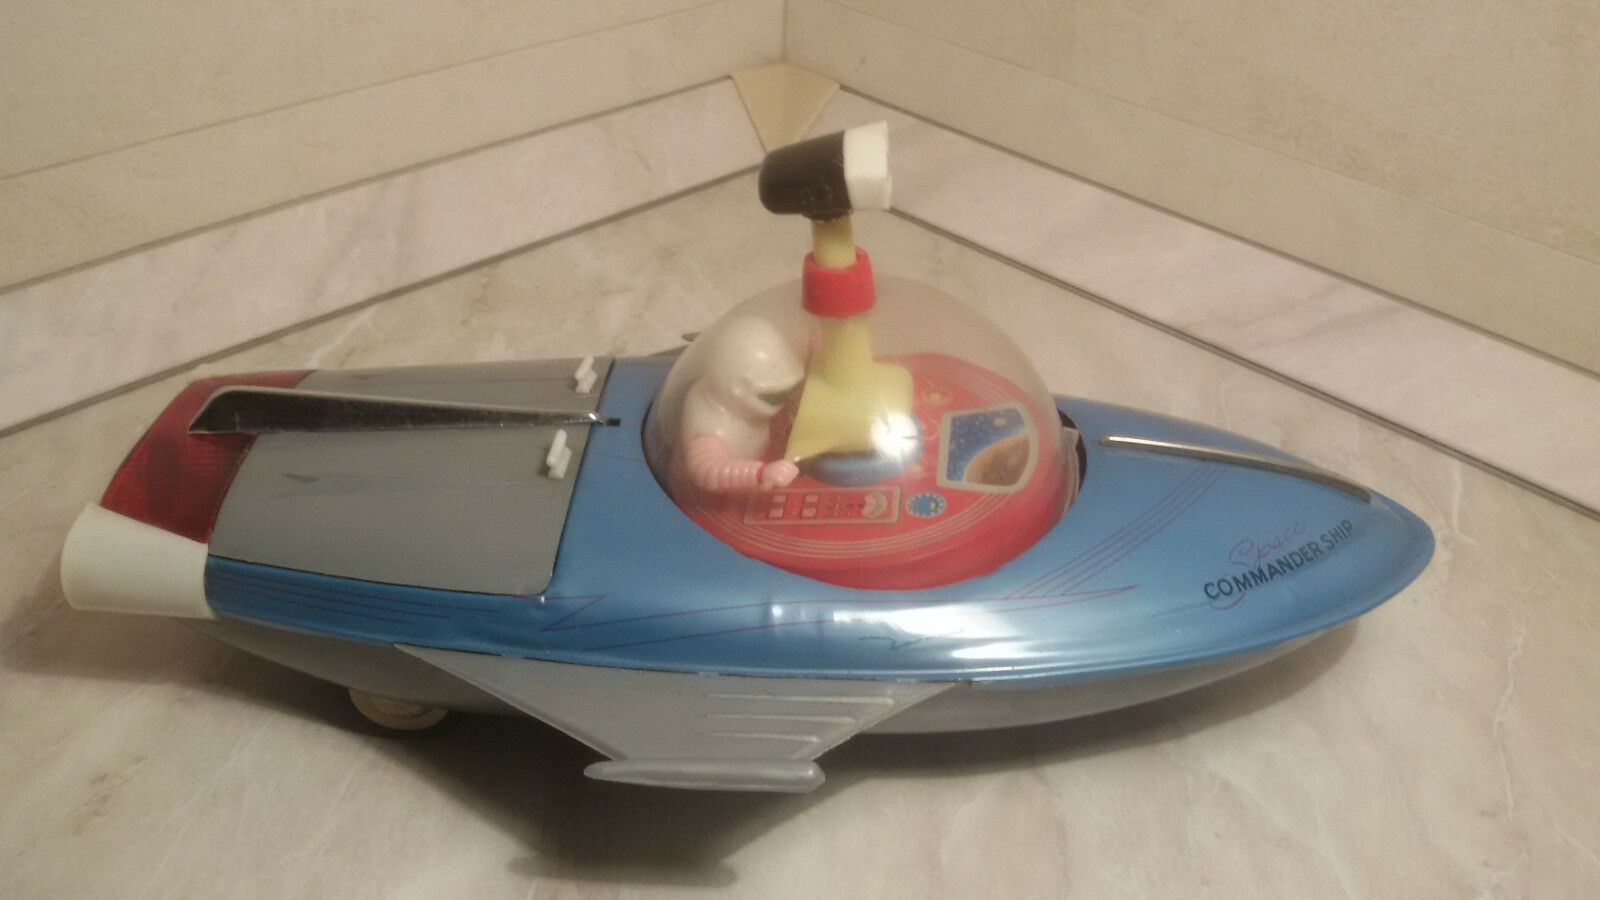 Razzo missile Boat Space commander ship Rocket Vintage TinToy 60s Universe